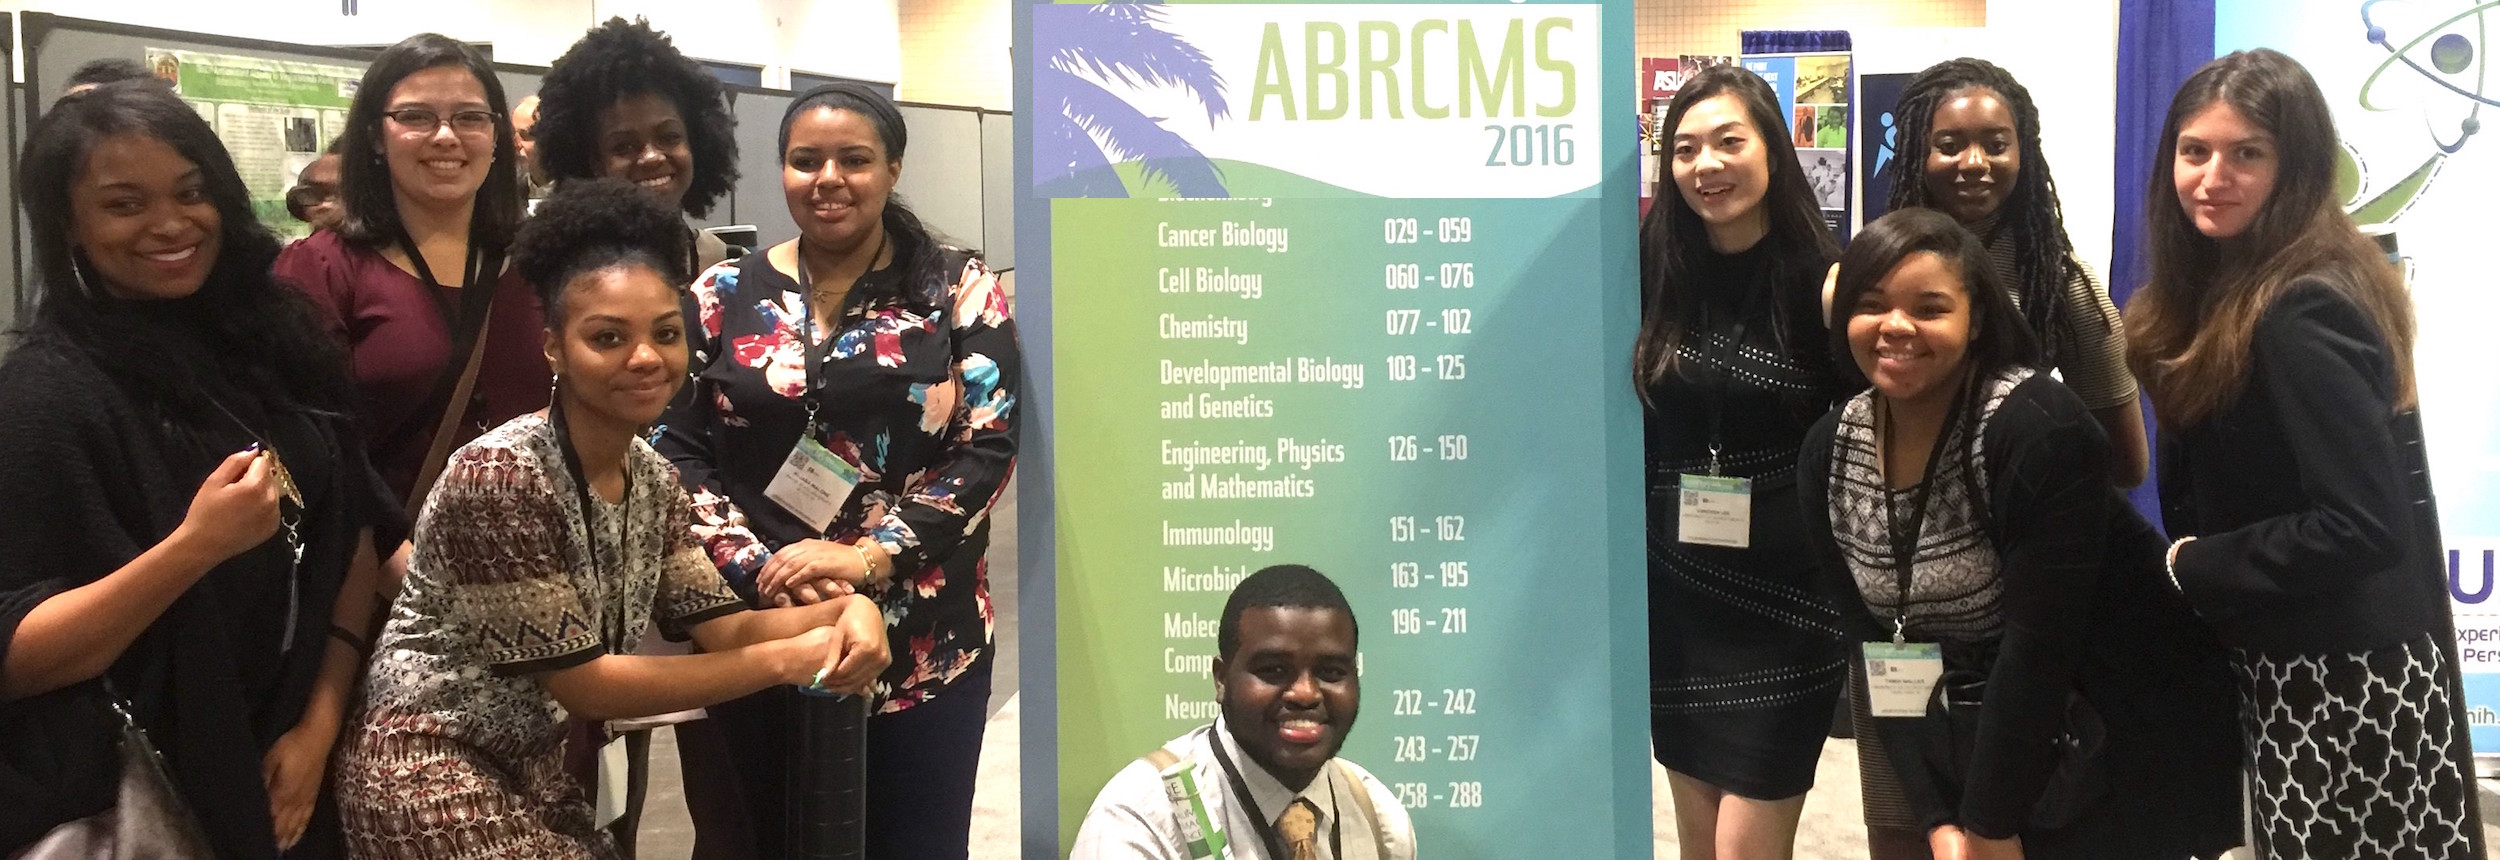 Winners at ABRCMS